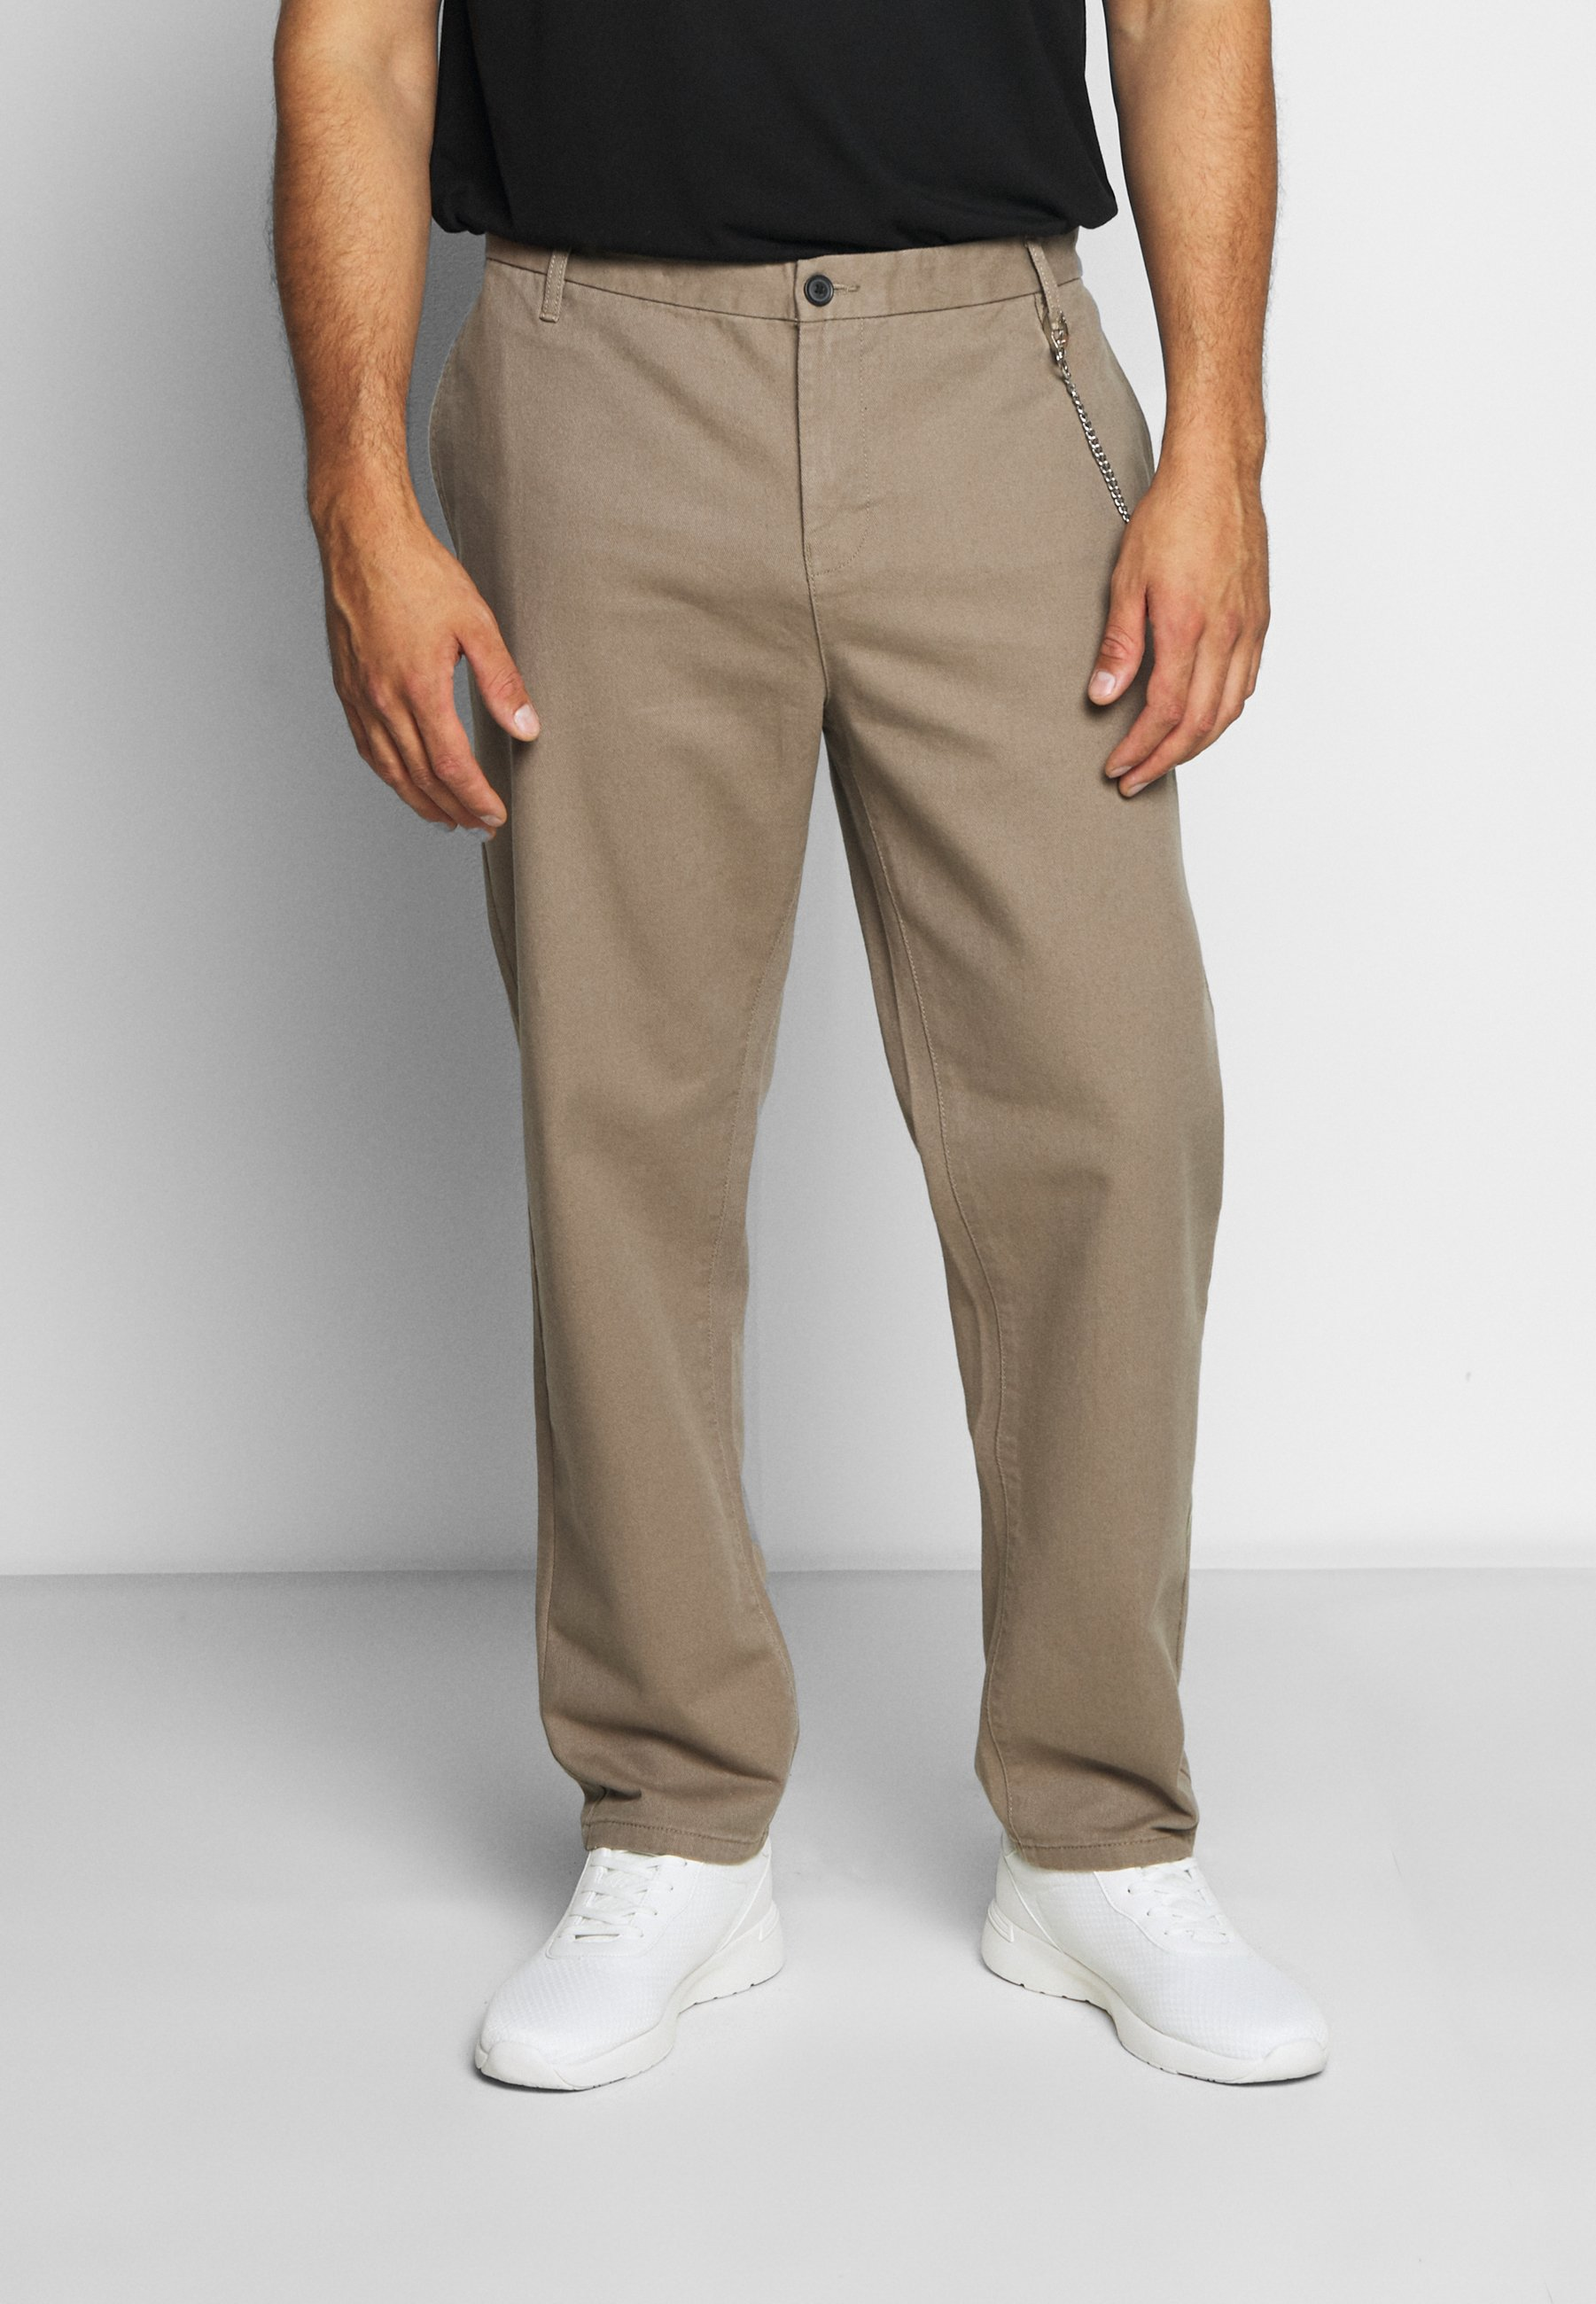 CROPPED LOOSE FIT PANTS Chino sand